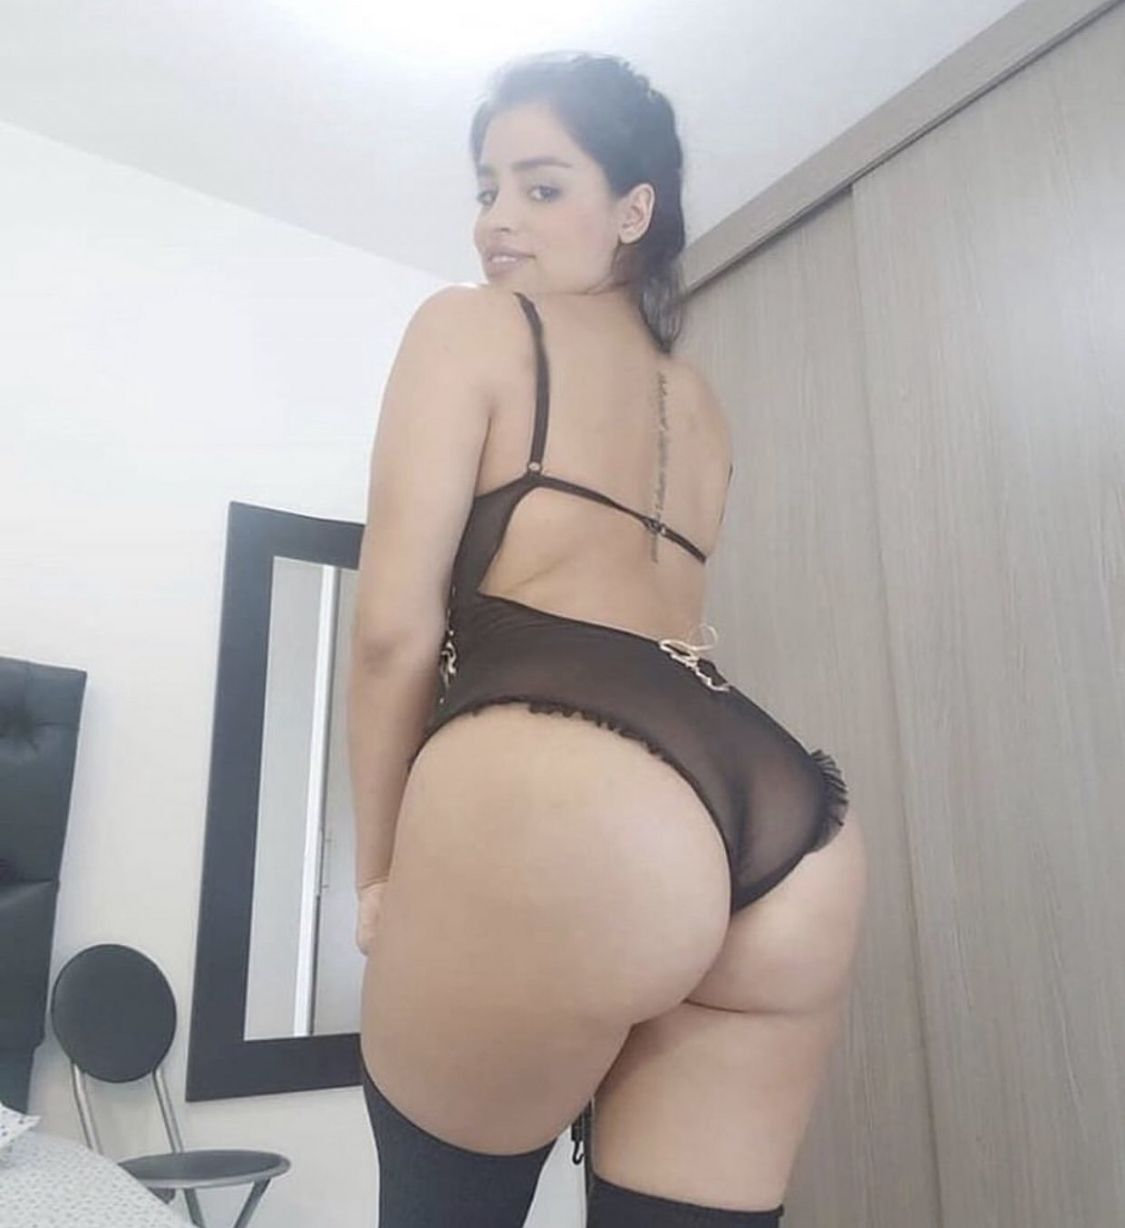 Esleidy onlyfans leaked onlyfans leaked